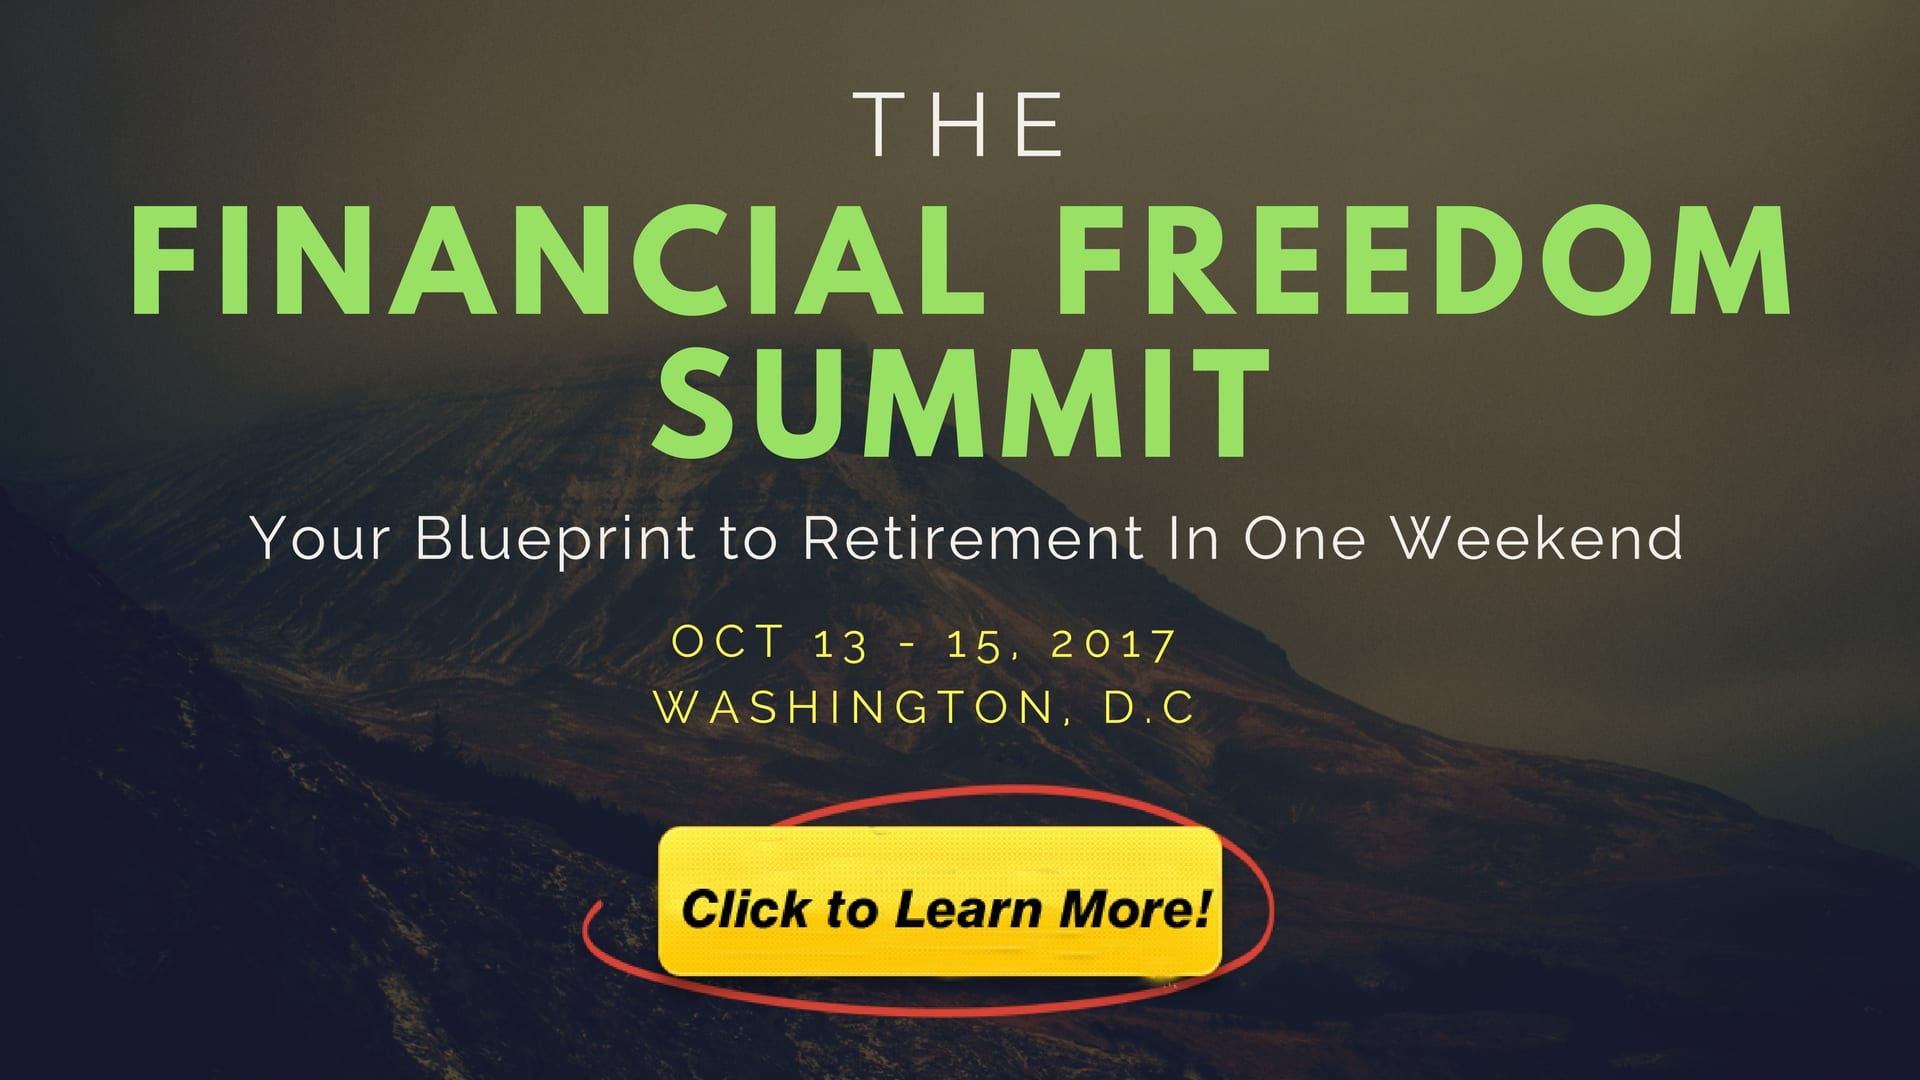 Join me at the Financial Freedom Summit!